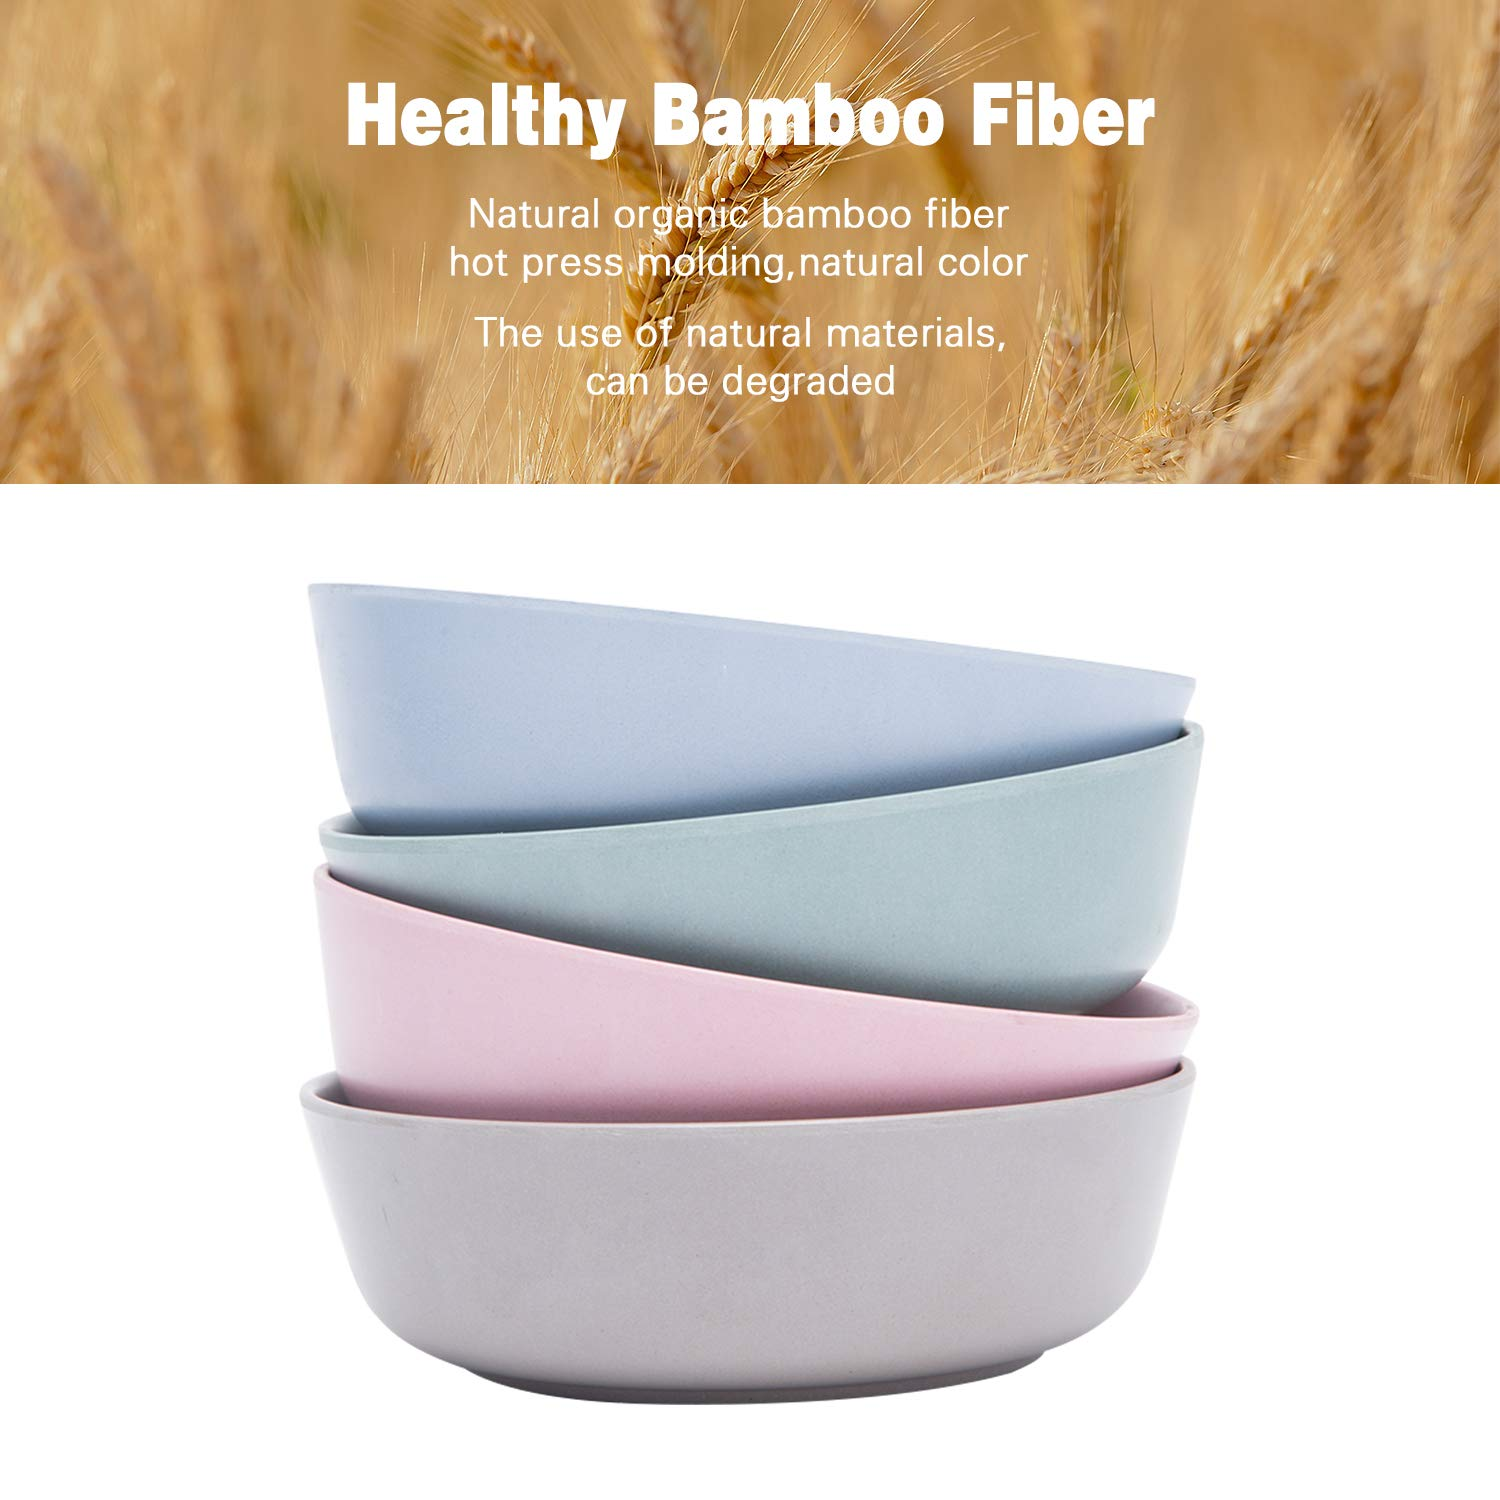 4pcs Bamboo Kids Bowls (20 fl oz) for Baby Feeding, Non Toxic & Safe Toddler Bowls, Eco-Friendly Tableware for Baby Toddler Kids Bamboo Toddler Dishes & Dinnerware Sets (Freshness) by HM-tech